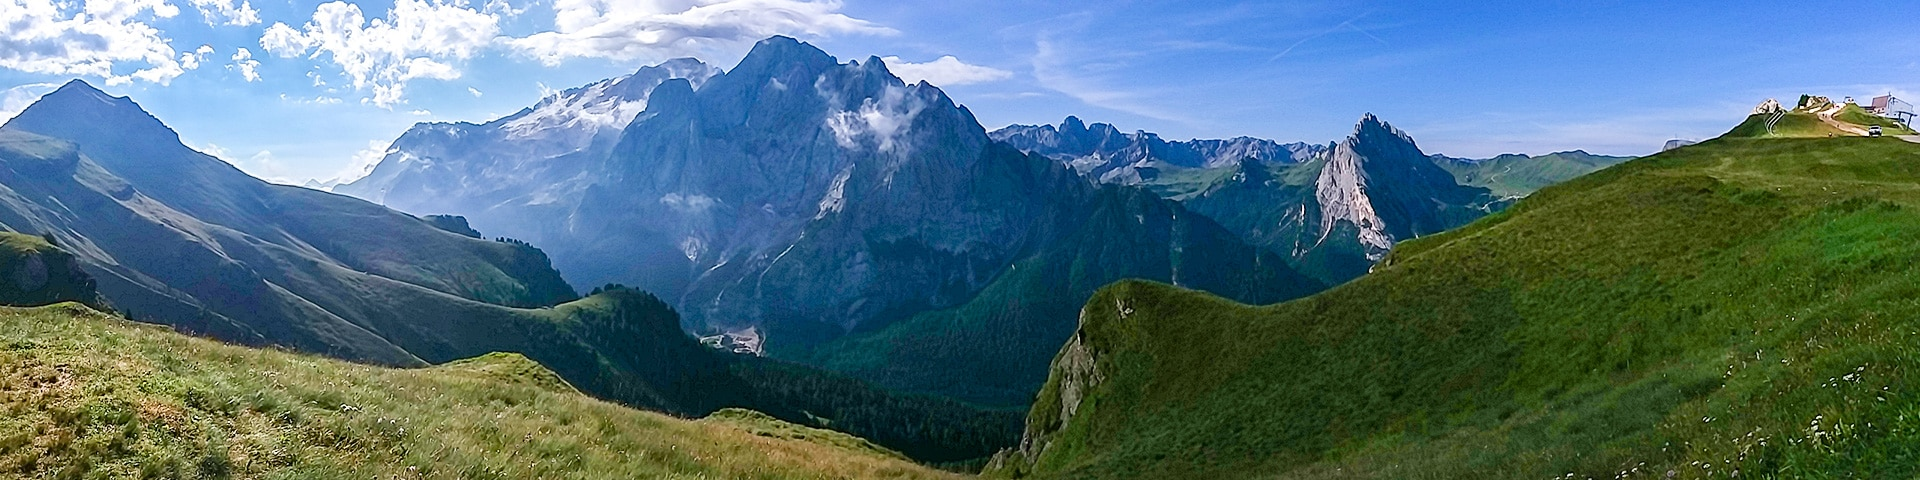 Panorama of the Viel del Pan hike in Dolomites, Italy